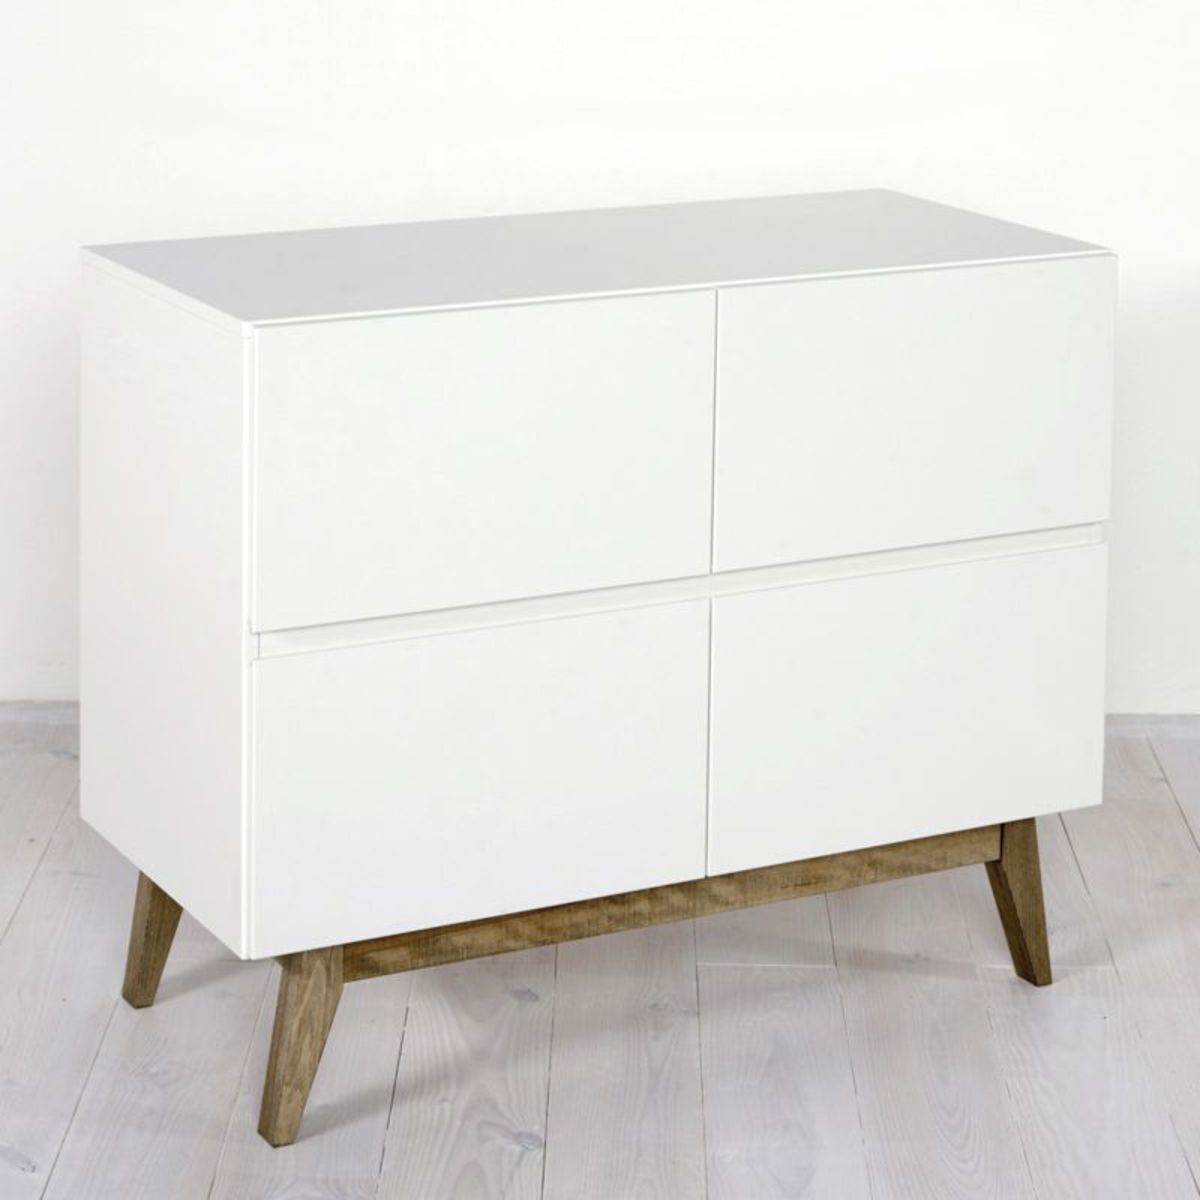 Quax commode trendy 4 tiroirs blanc commode quax sur l for Chambre quax trendy